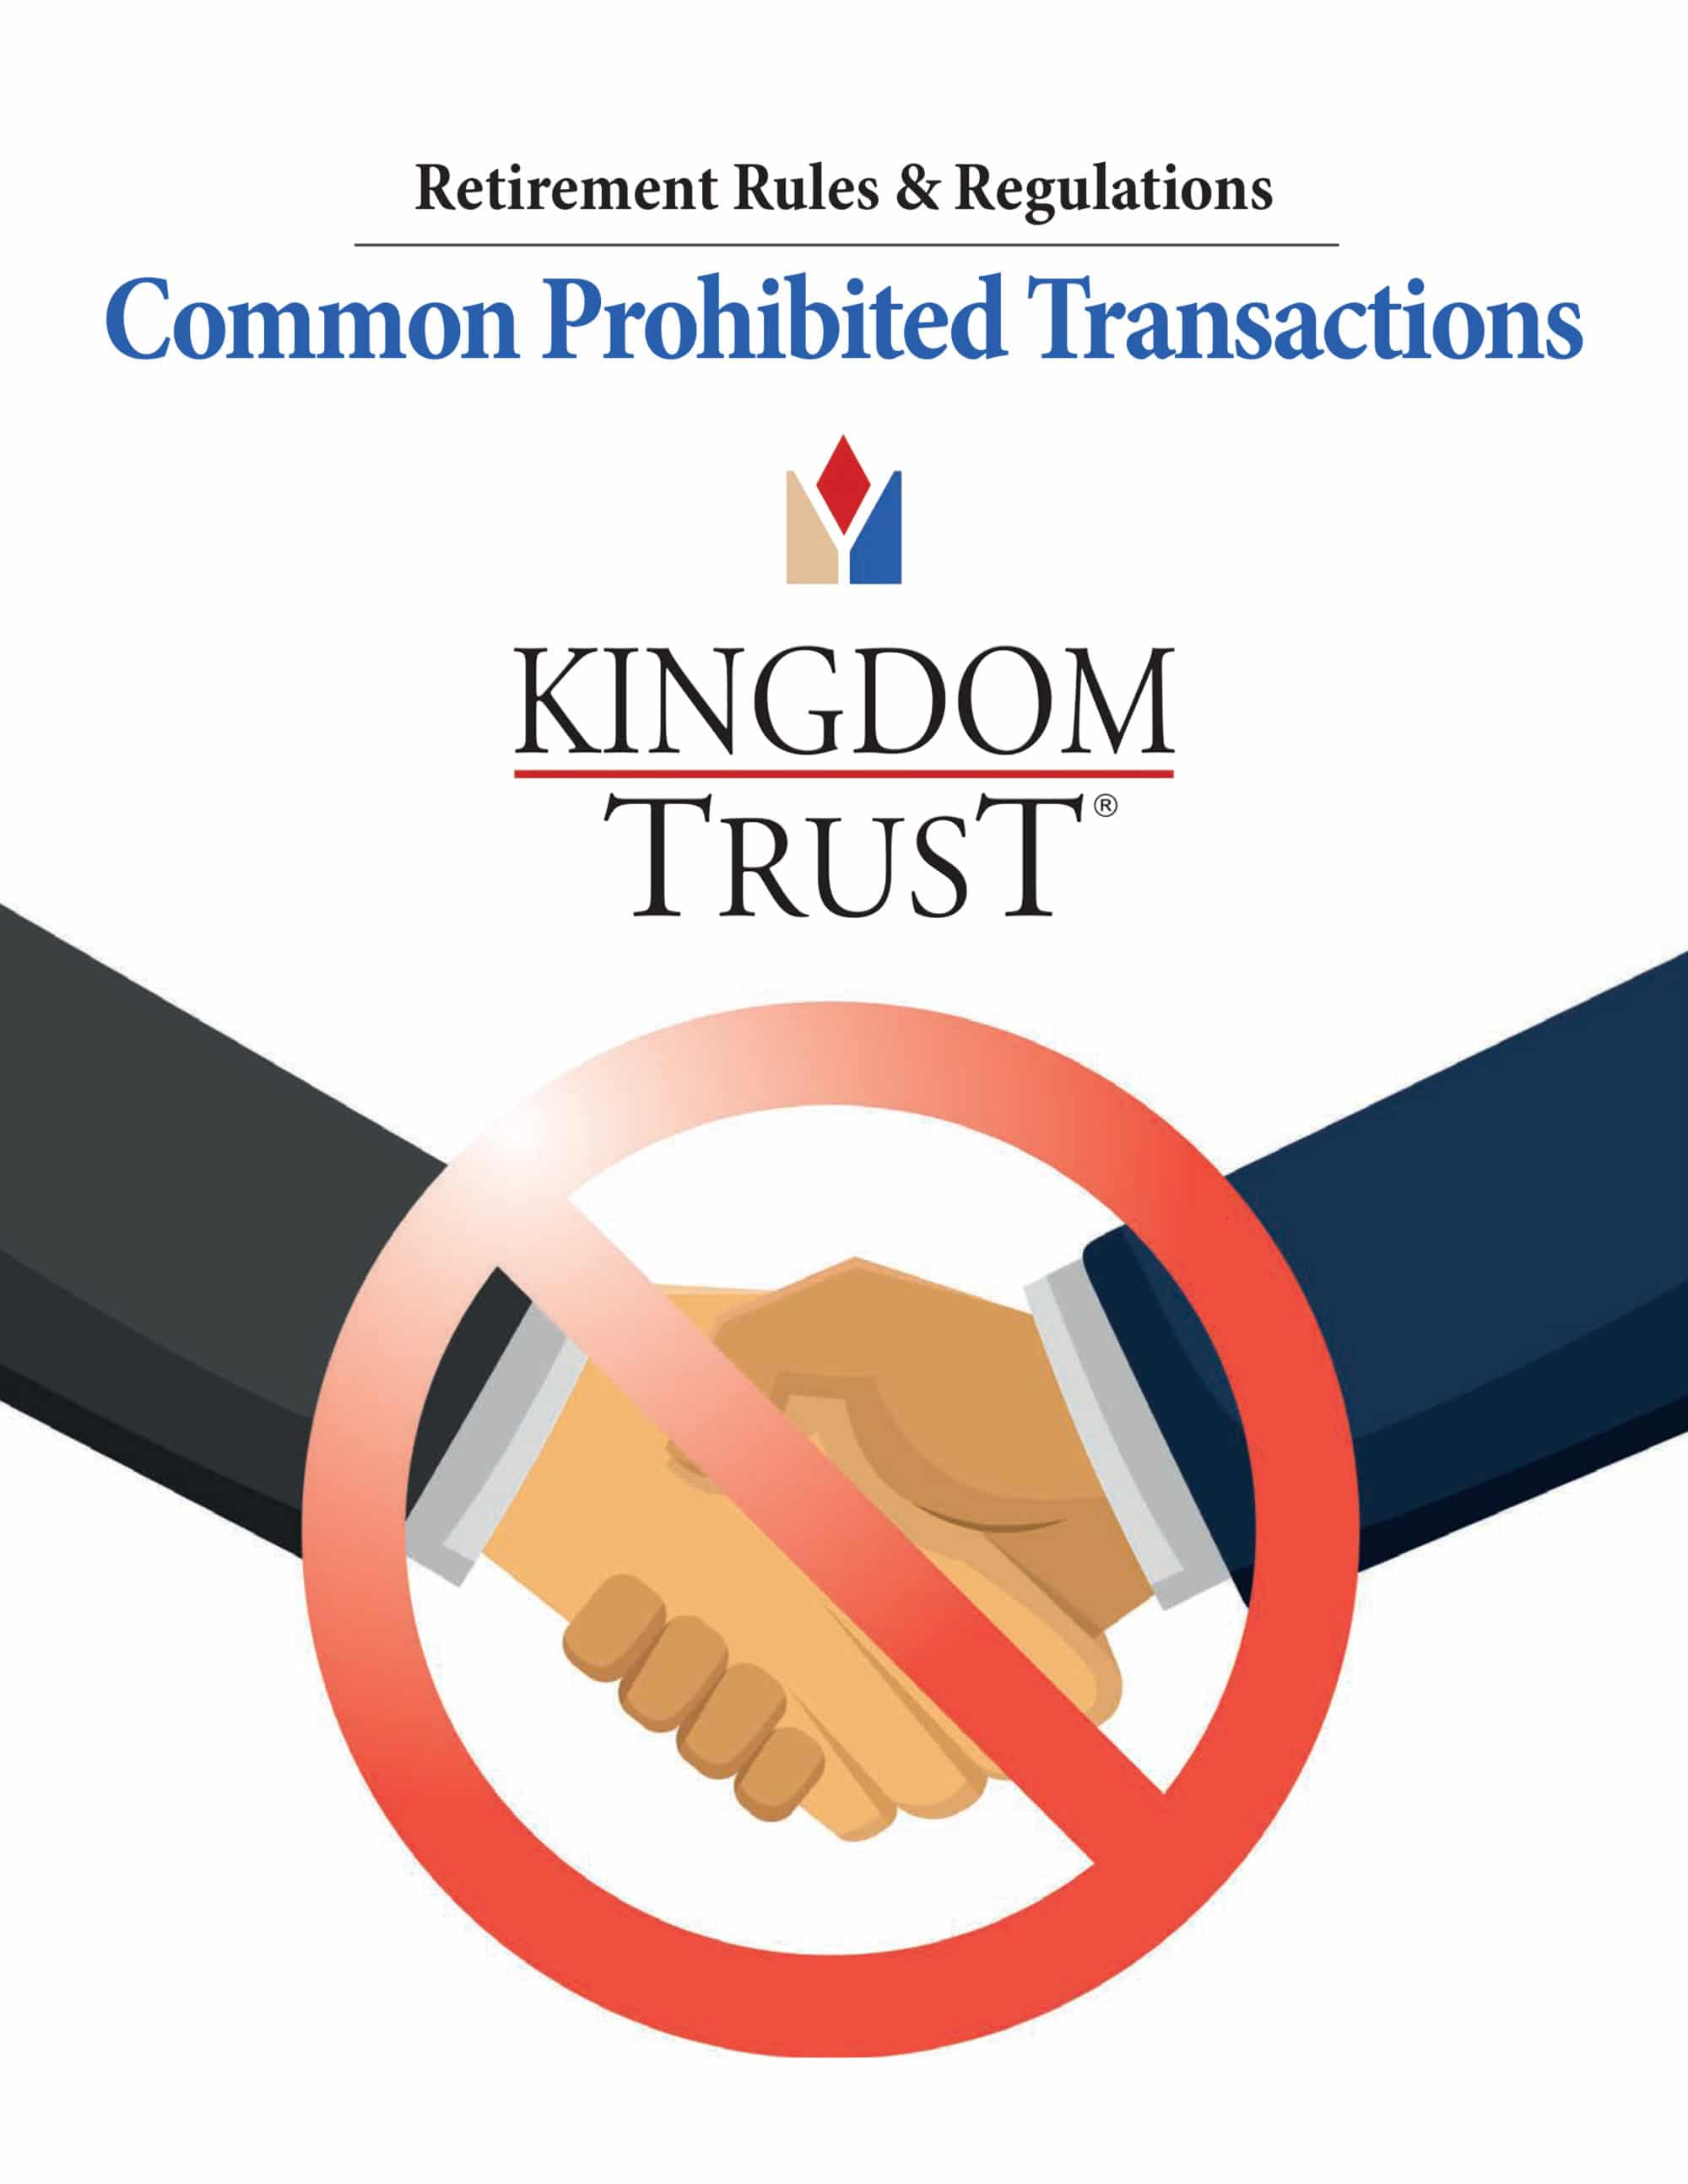 Common Prohibited Transactions